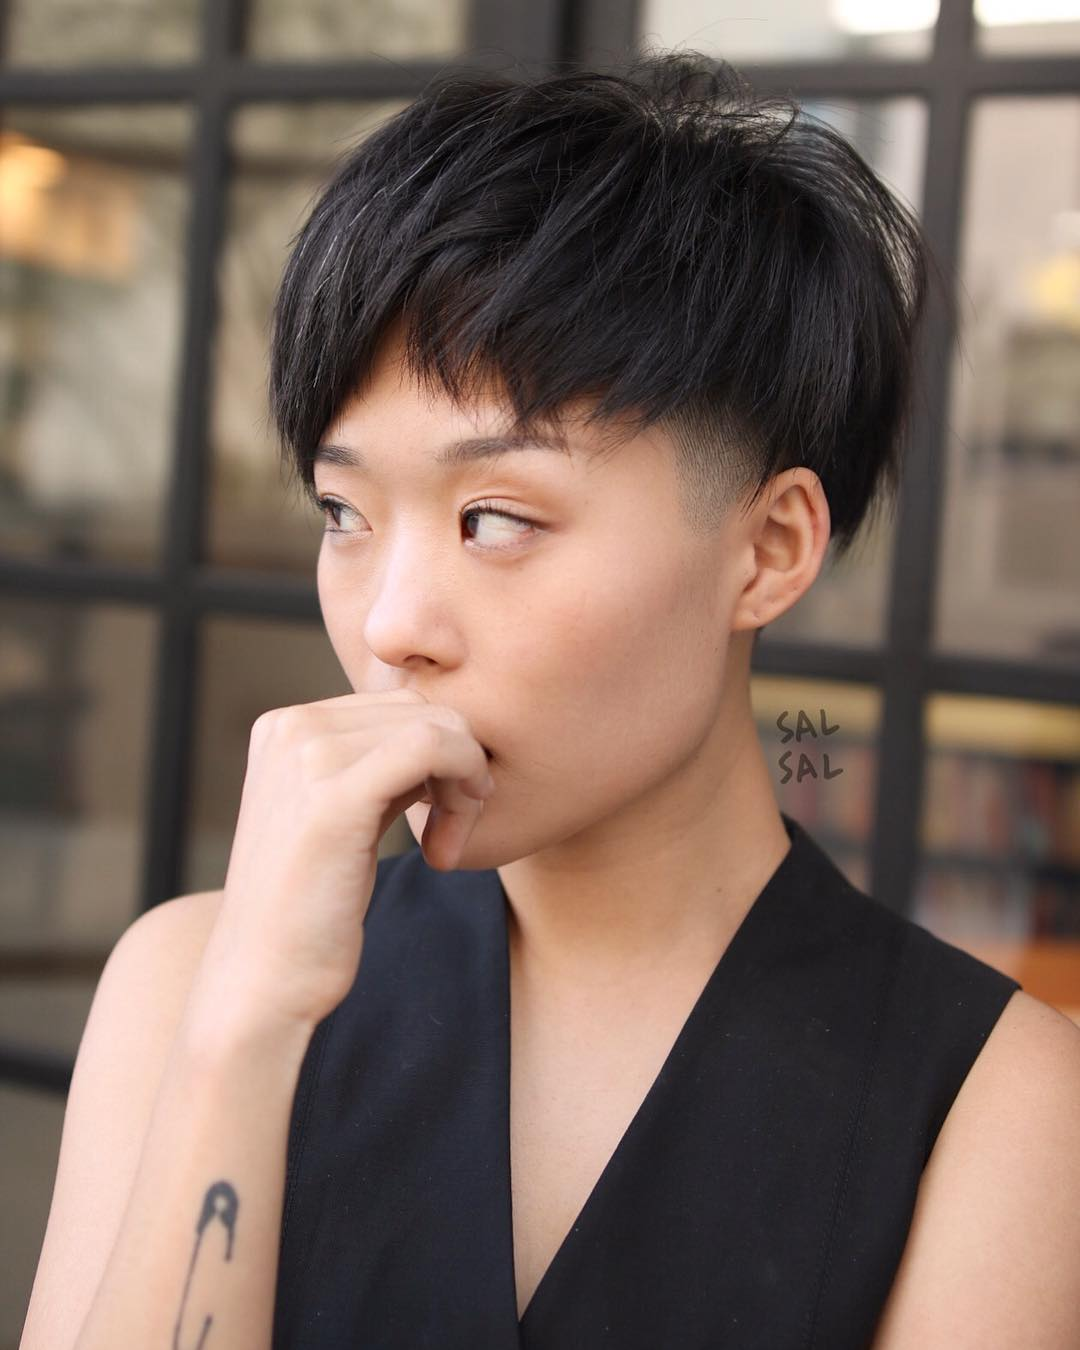 Dark Edgy Bowl Cut with Undercut and Fringe Short Hairstyle